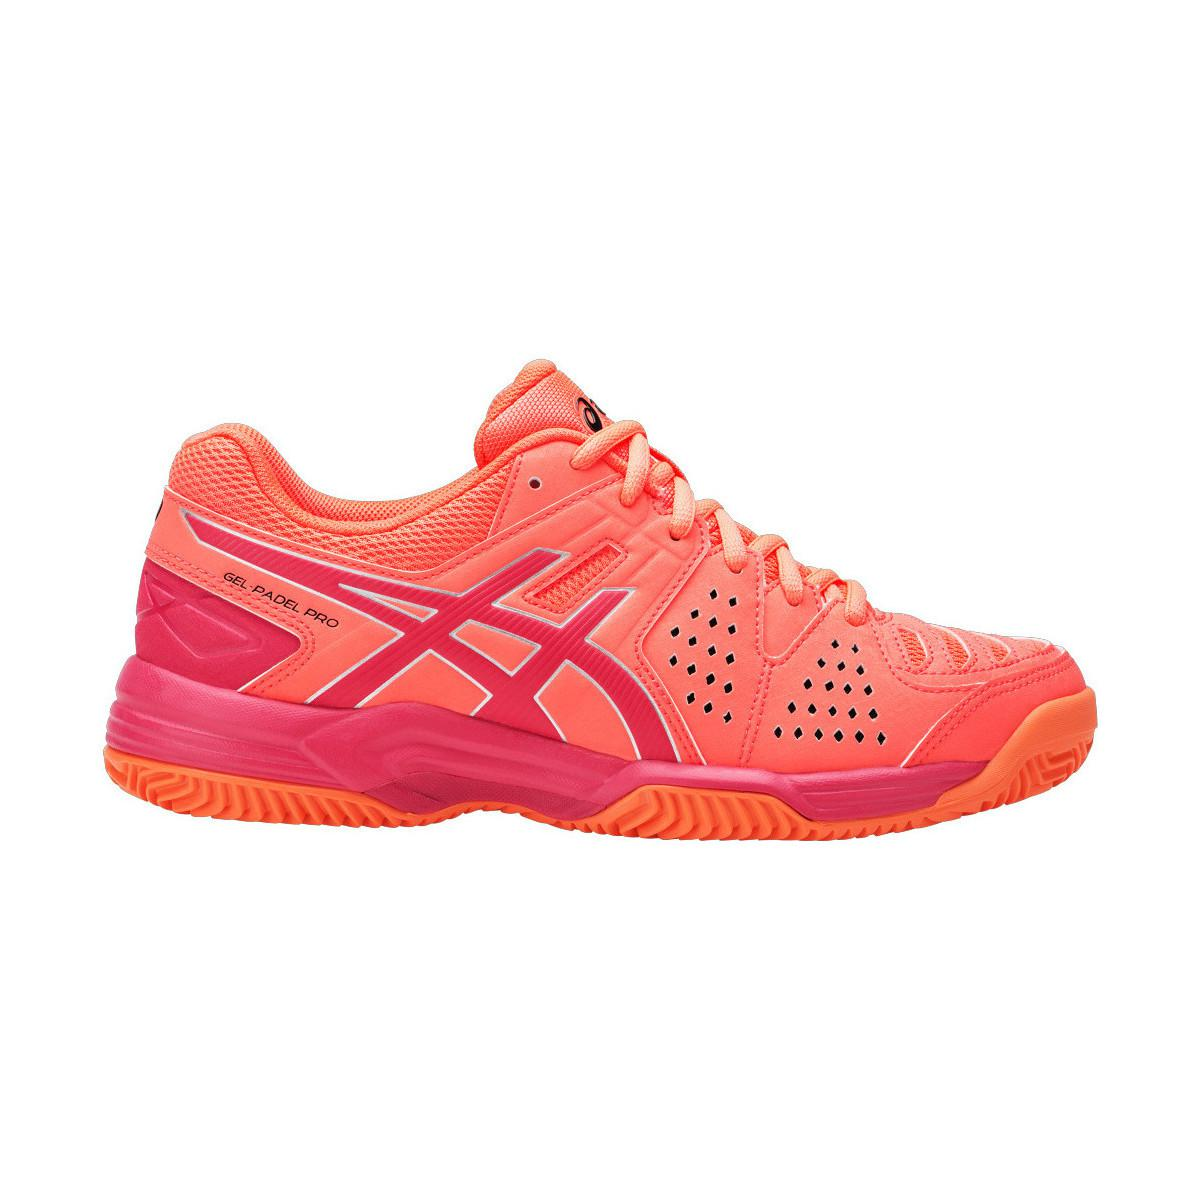 Asics - Red Gel Padel Pro 3 Sg Women s Shoes (trainers) In Other -. View  fullscreen 27b8daac8f825